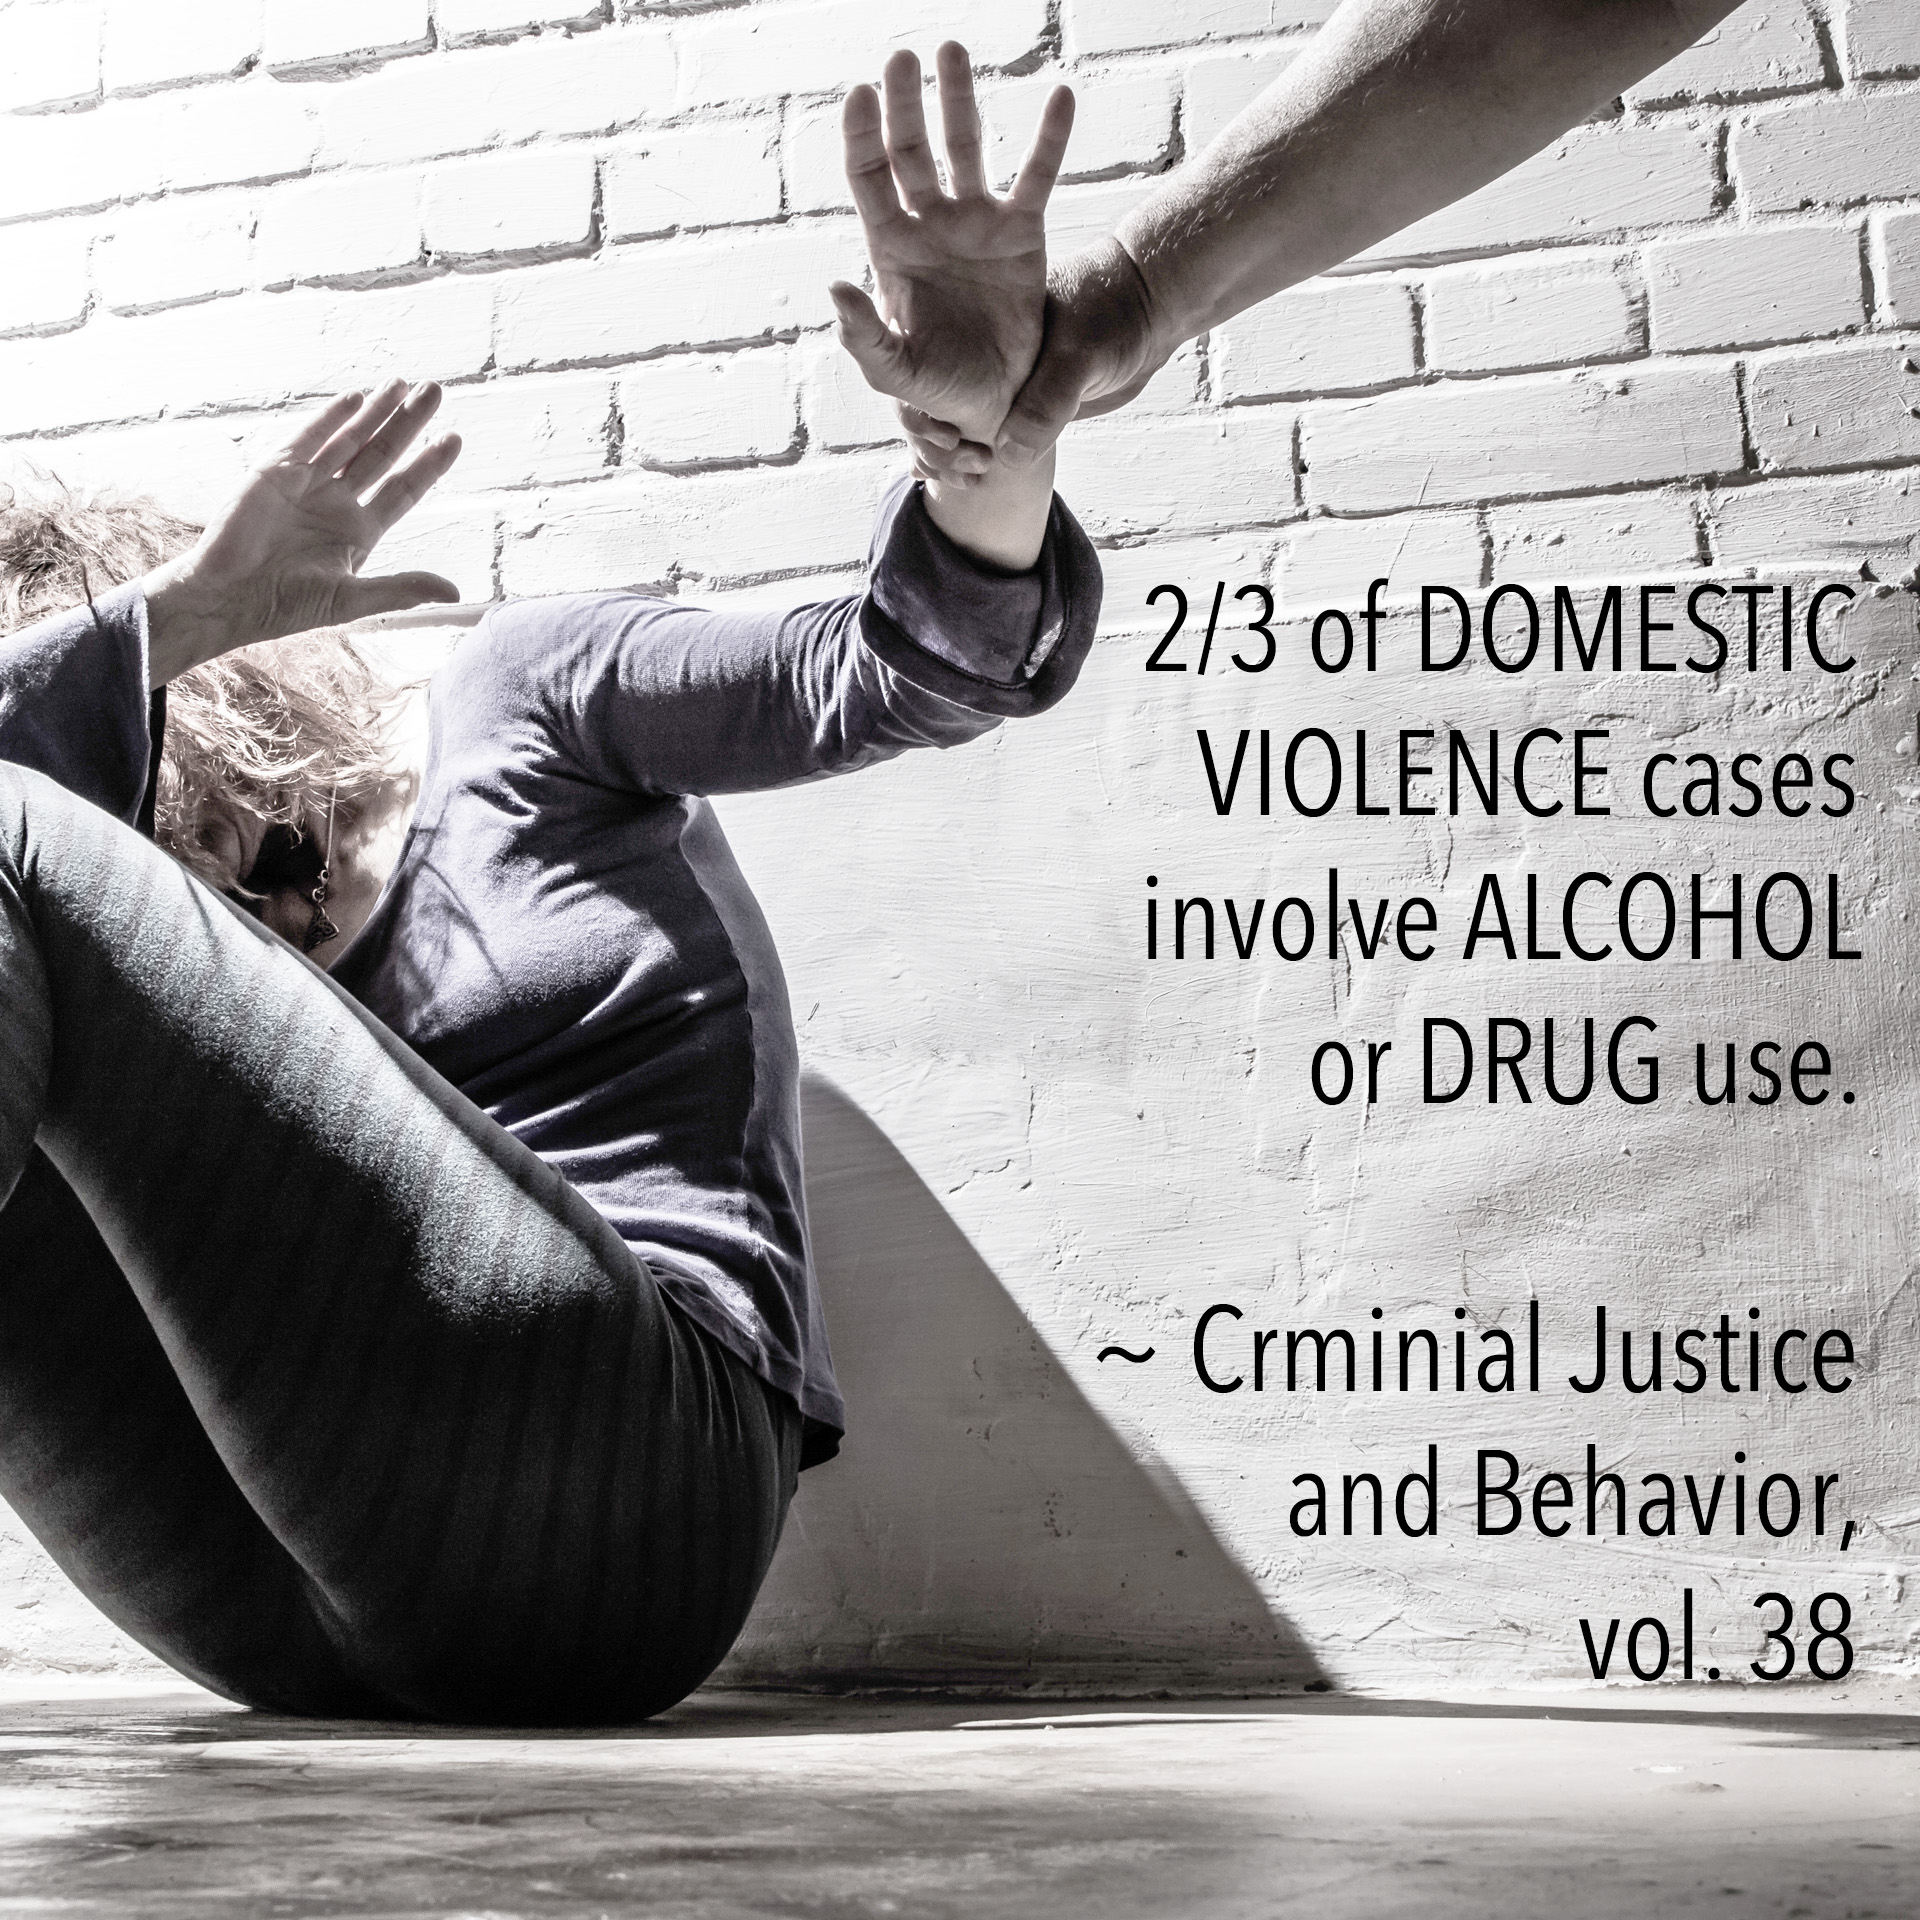 2/3 of DOMESTIC VIOLENCE cases involve alcohol or drug use